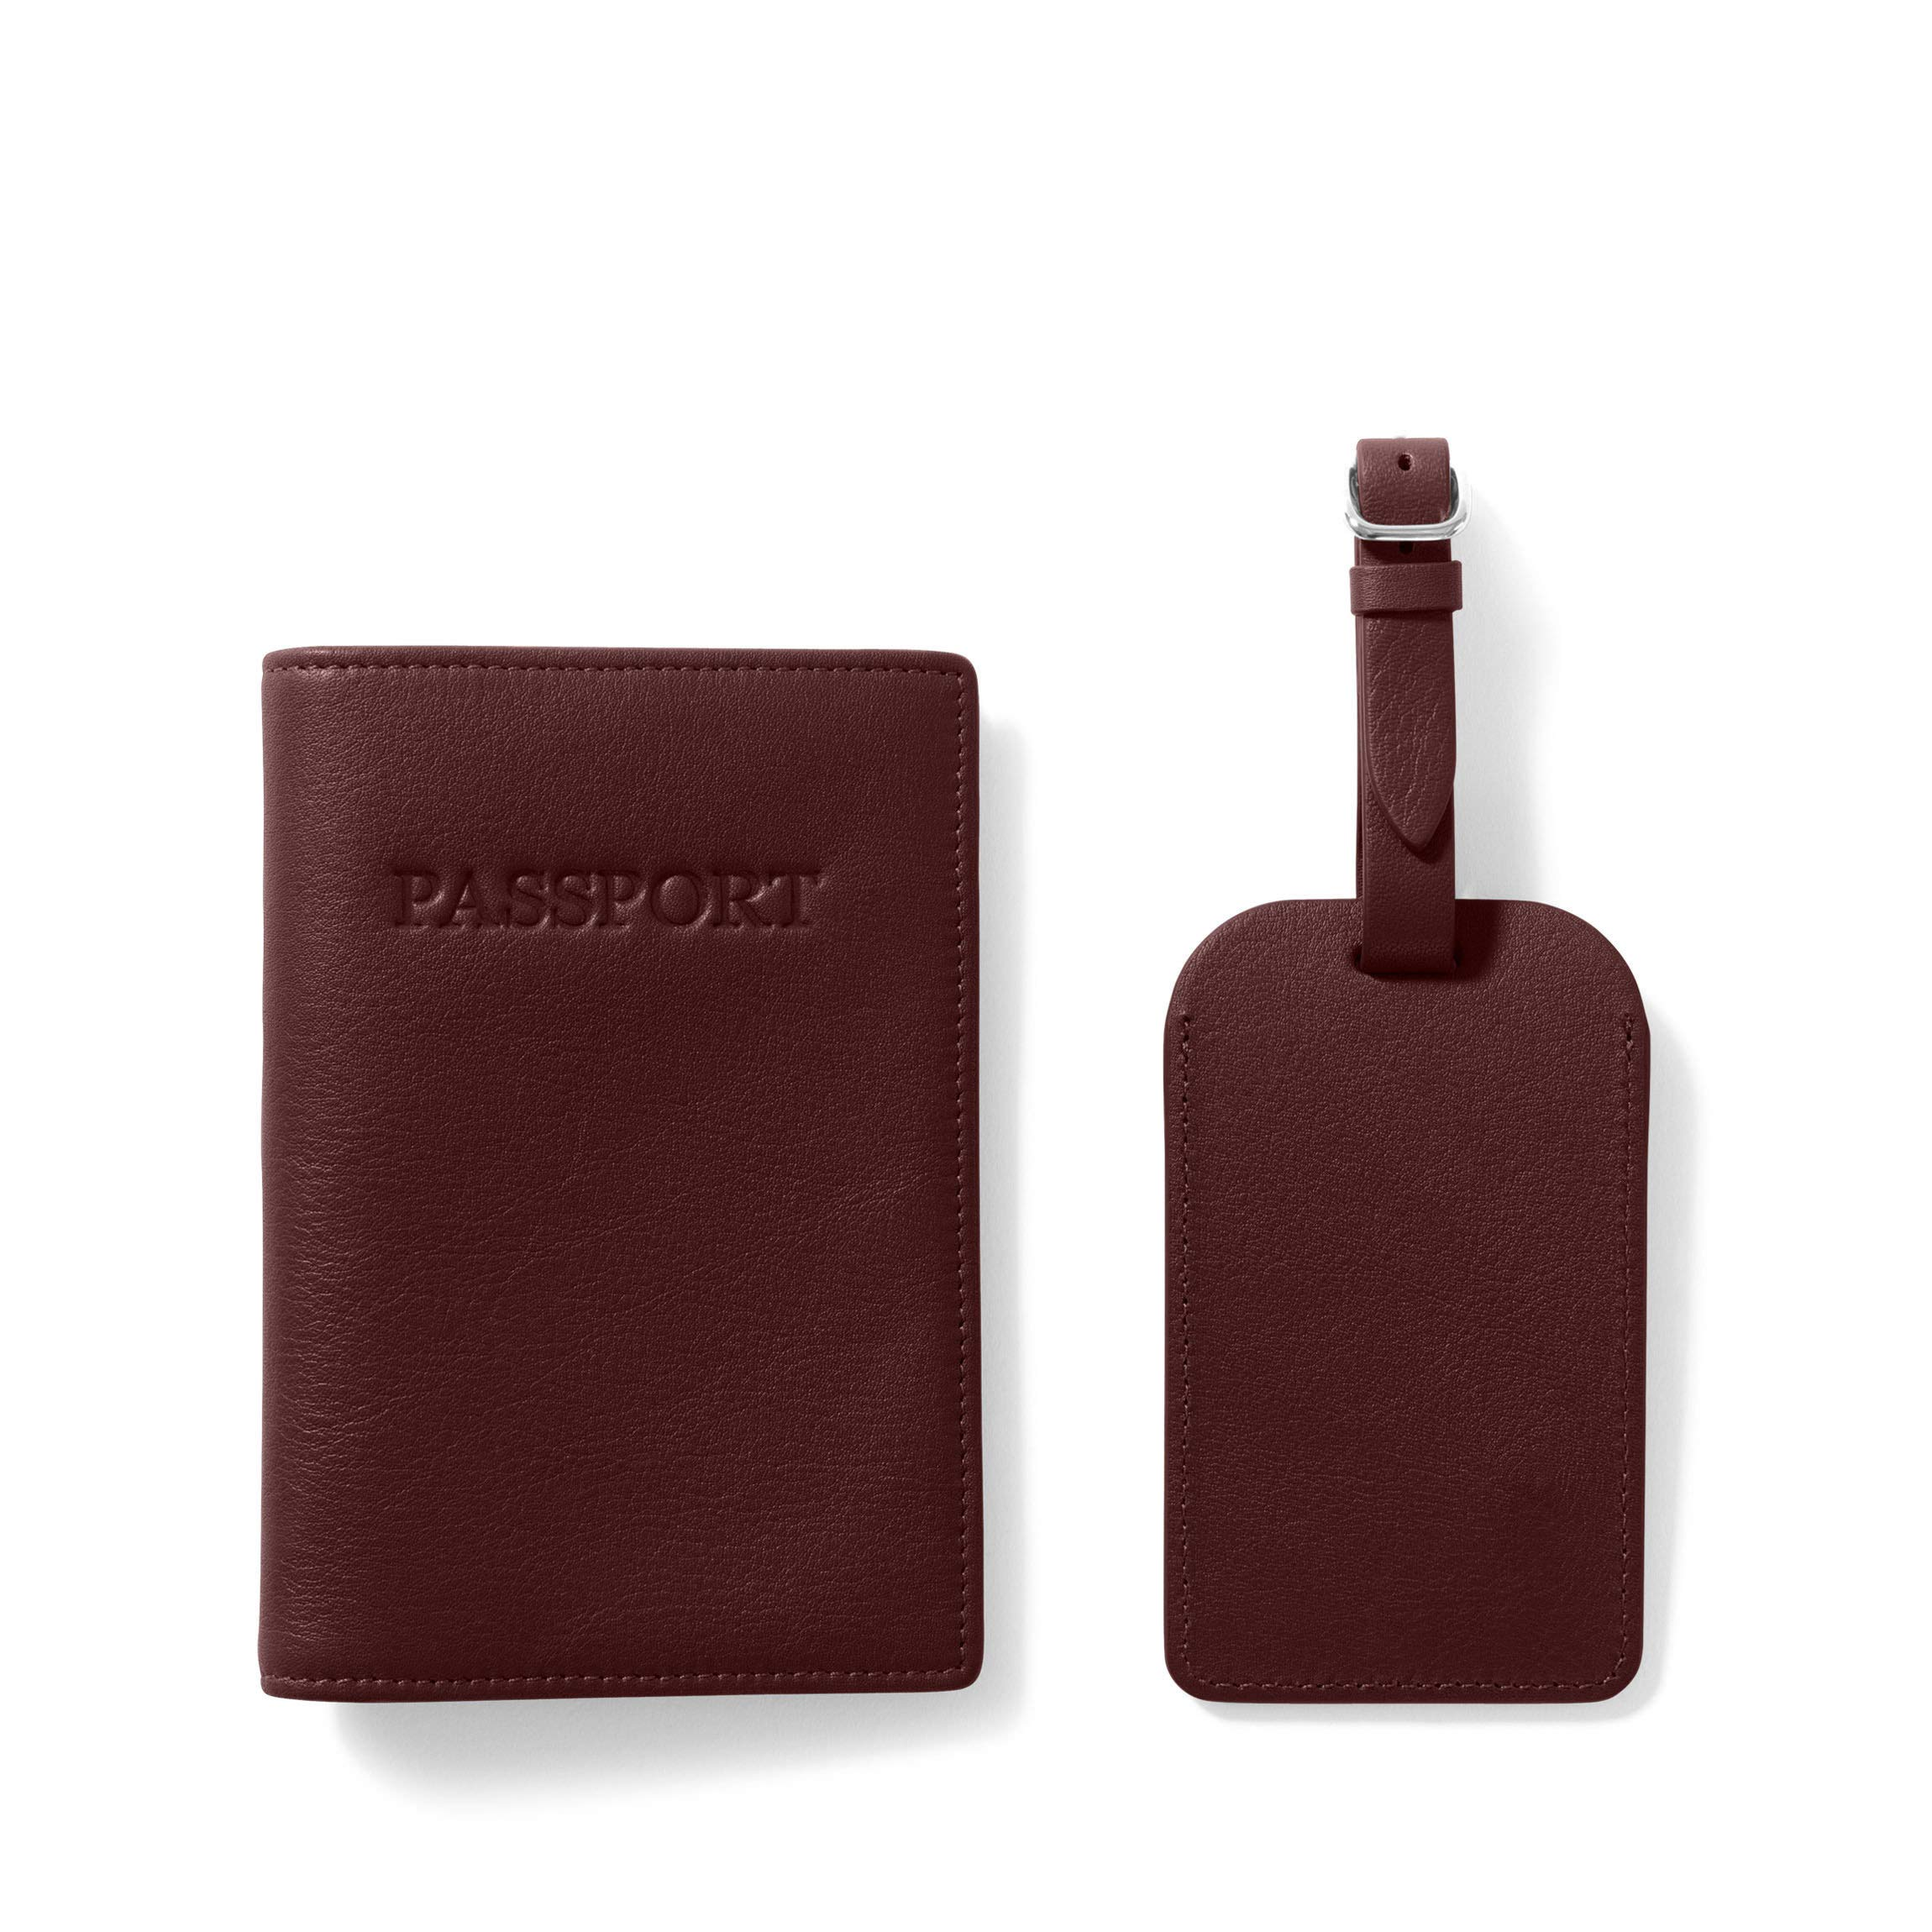 Passport Cover + Luggage Tag - Full Grain Leather Leather - Bordeaux (Red)